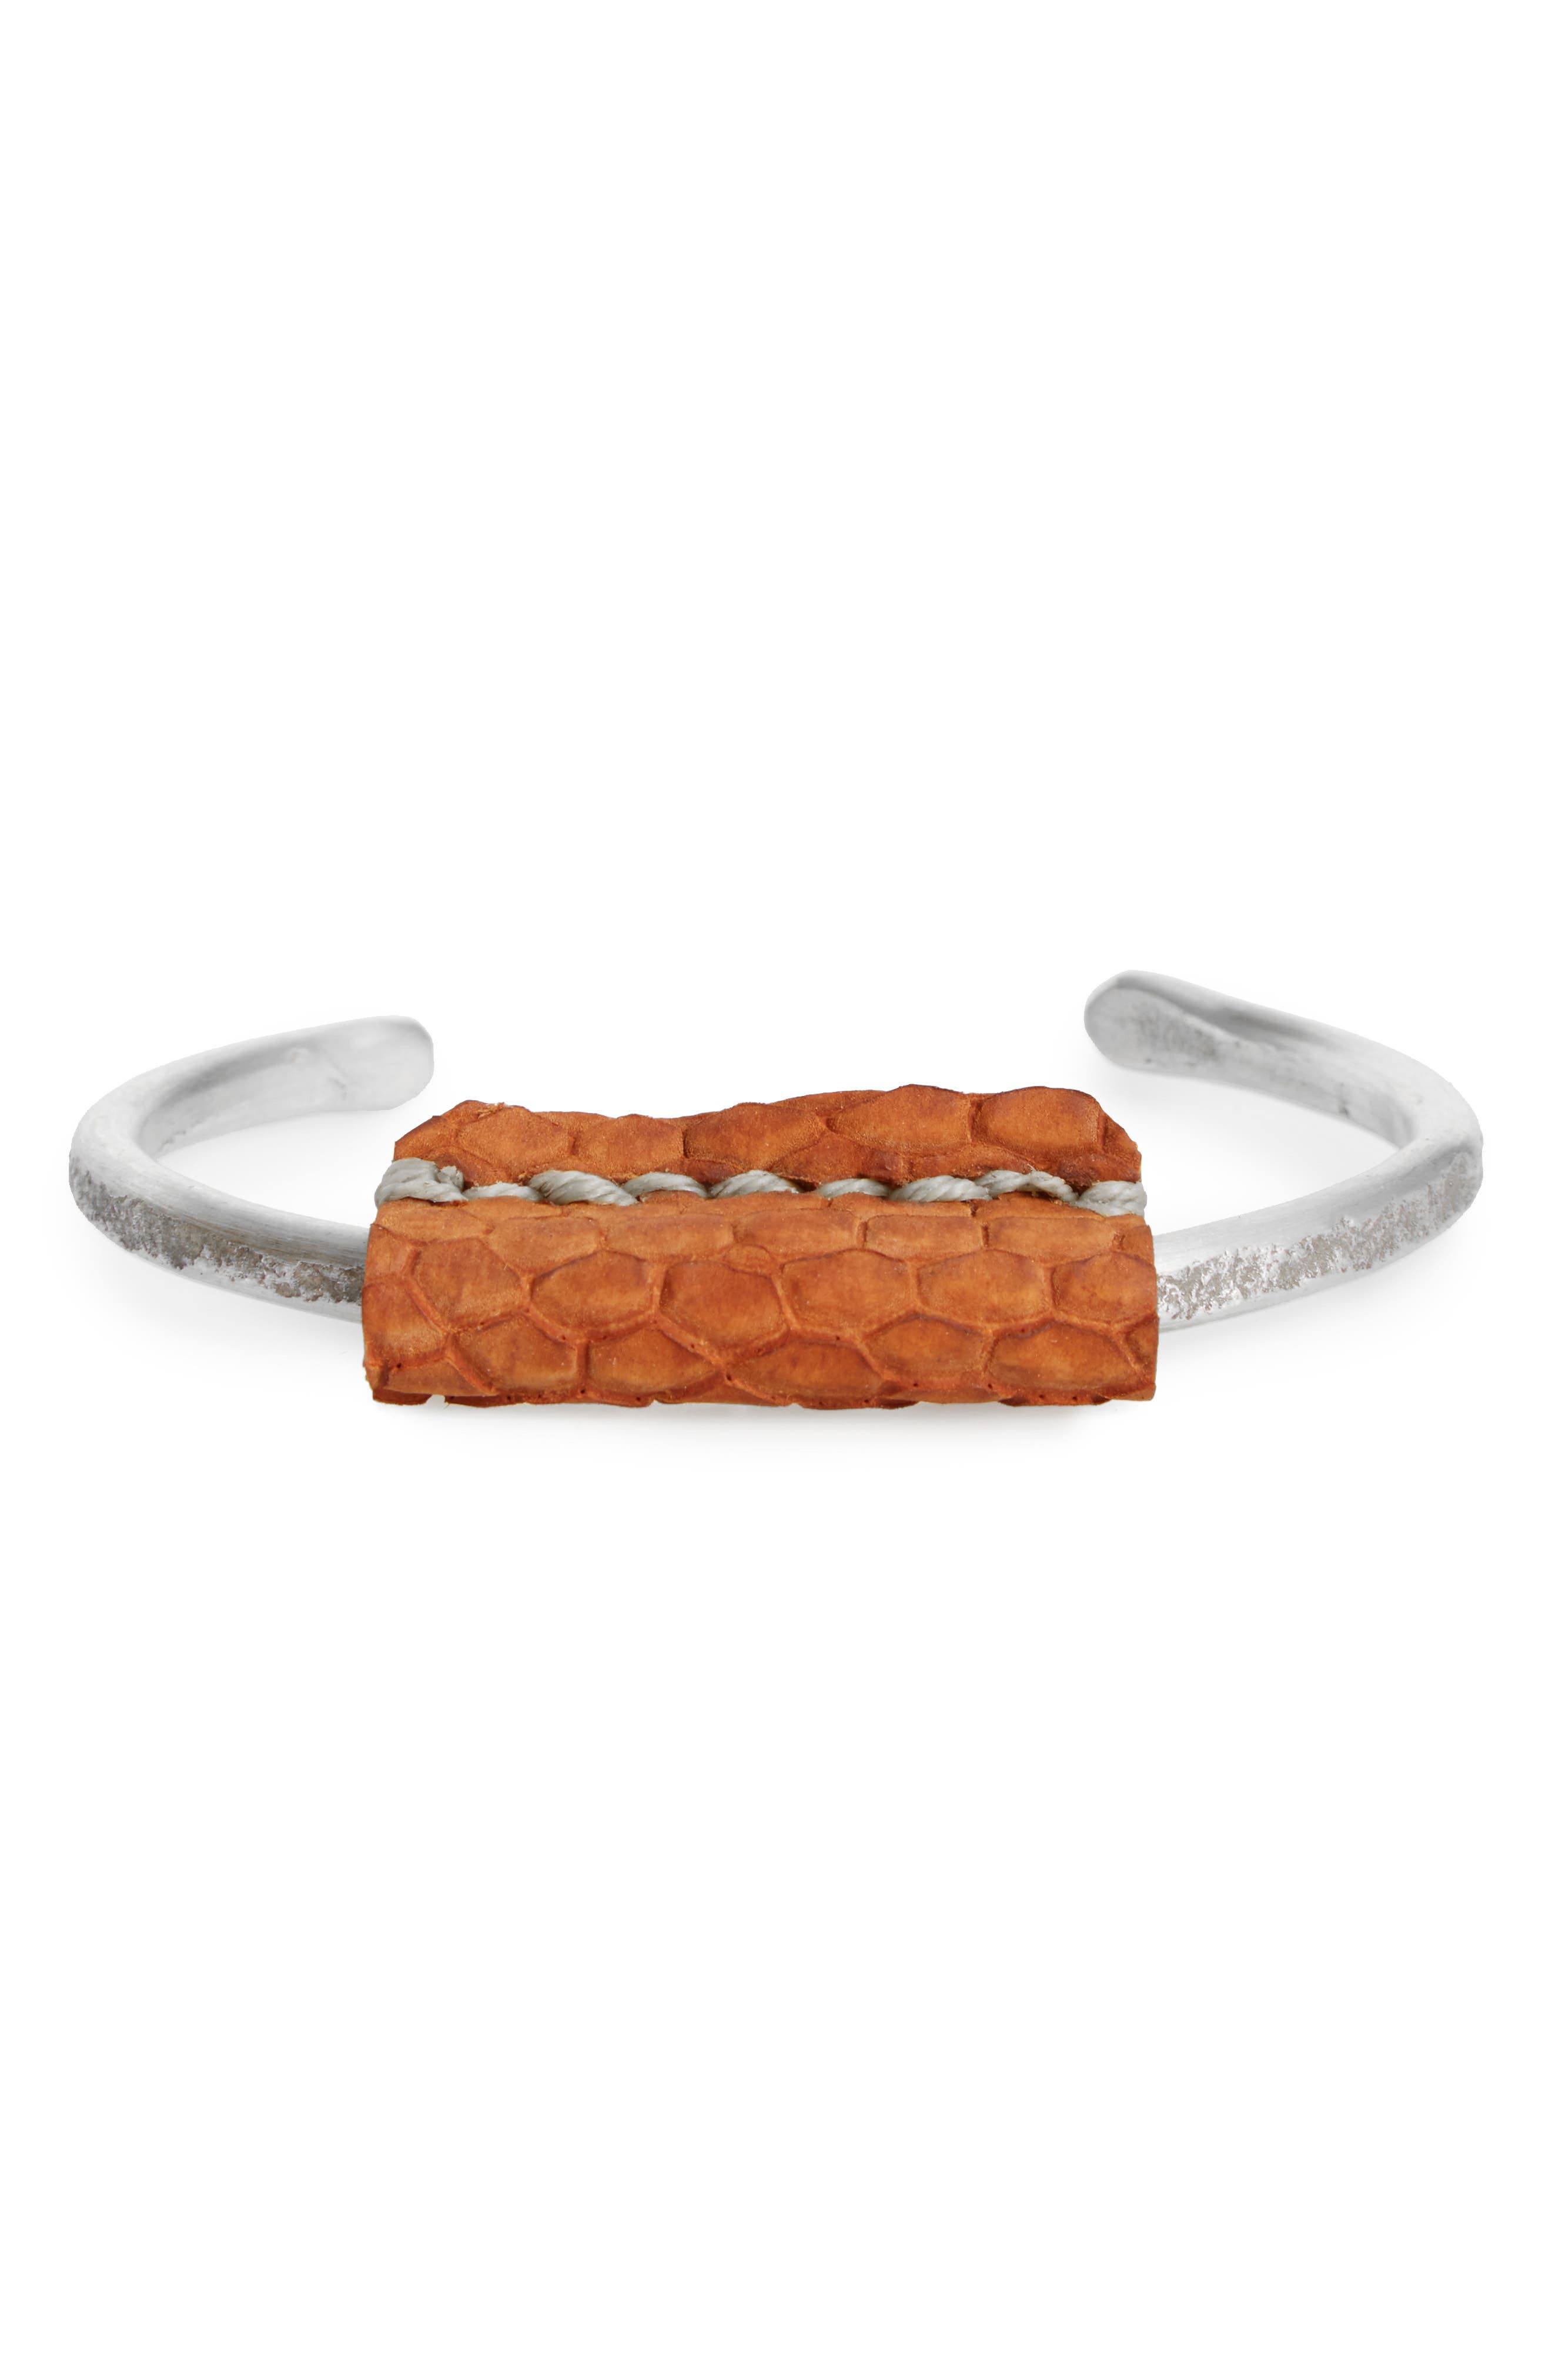 Cause & Effect Hammer Sterling Silver Cuff Bracelet,                             Main thumbnail 1, color,                             Silver/ Tan